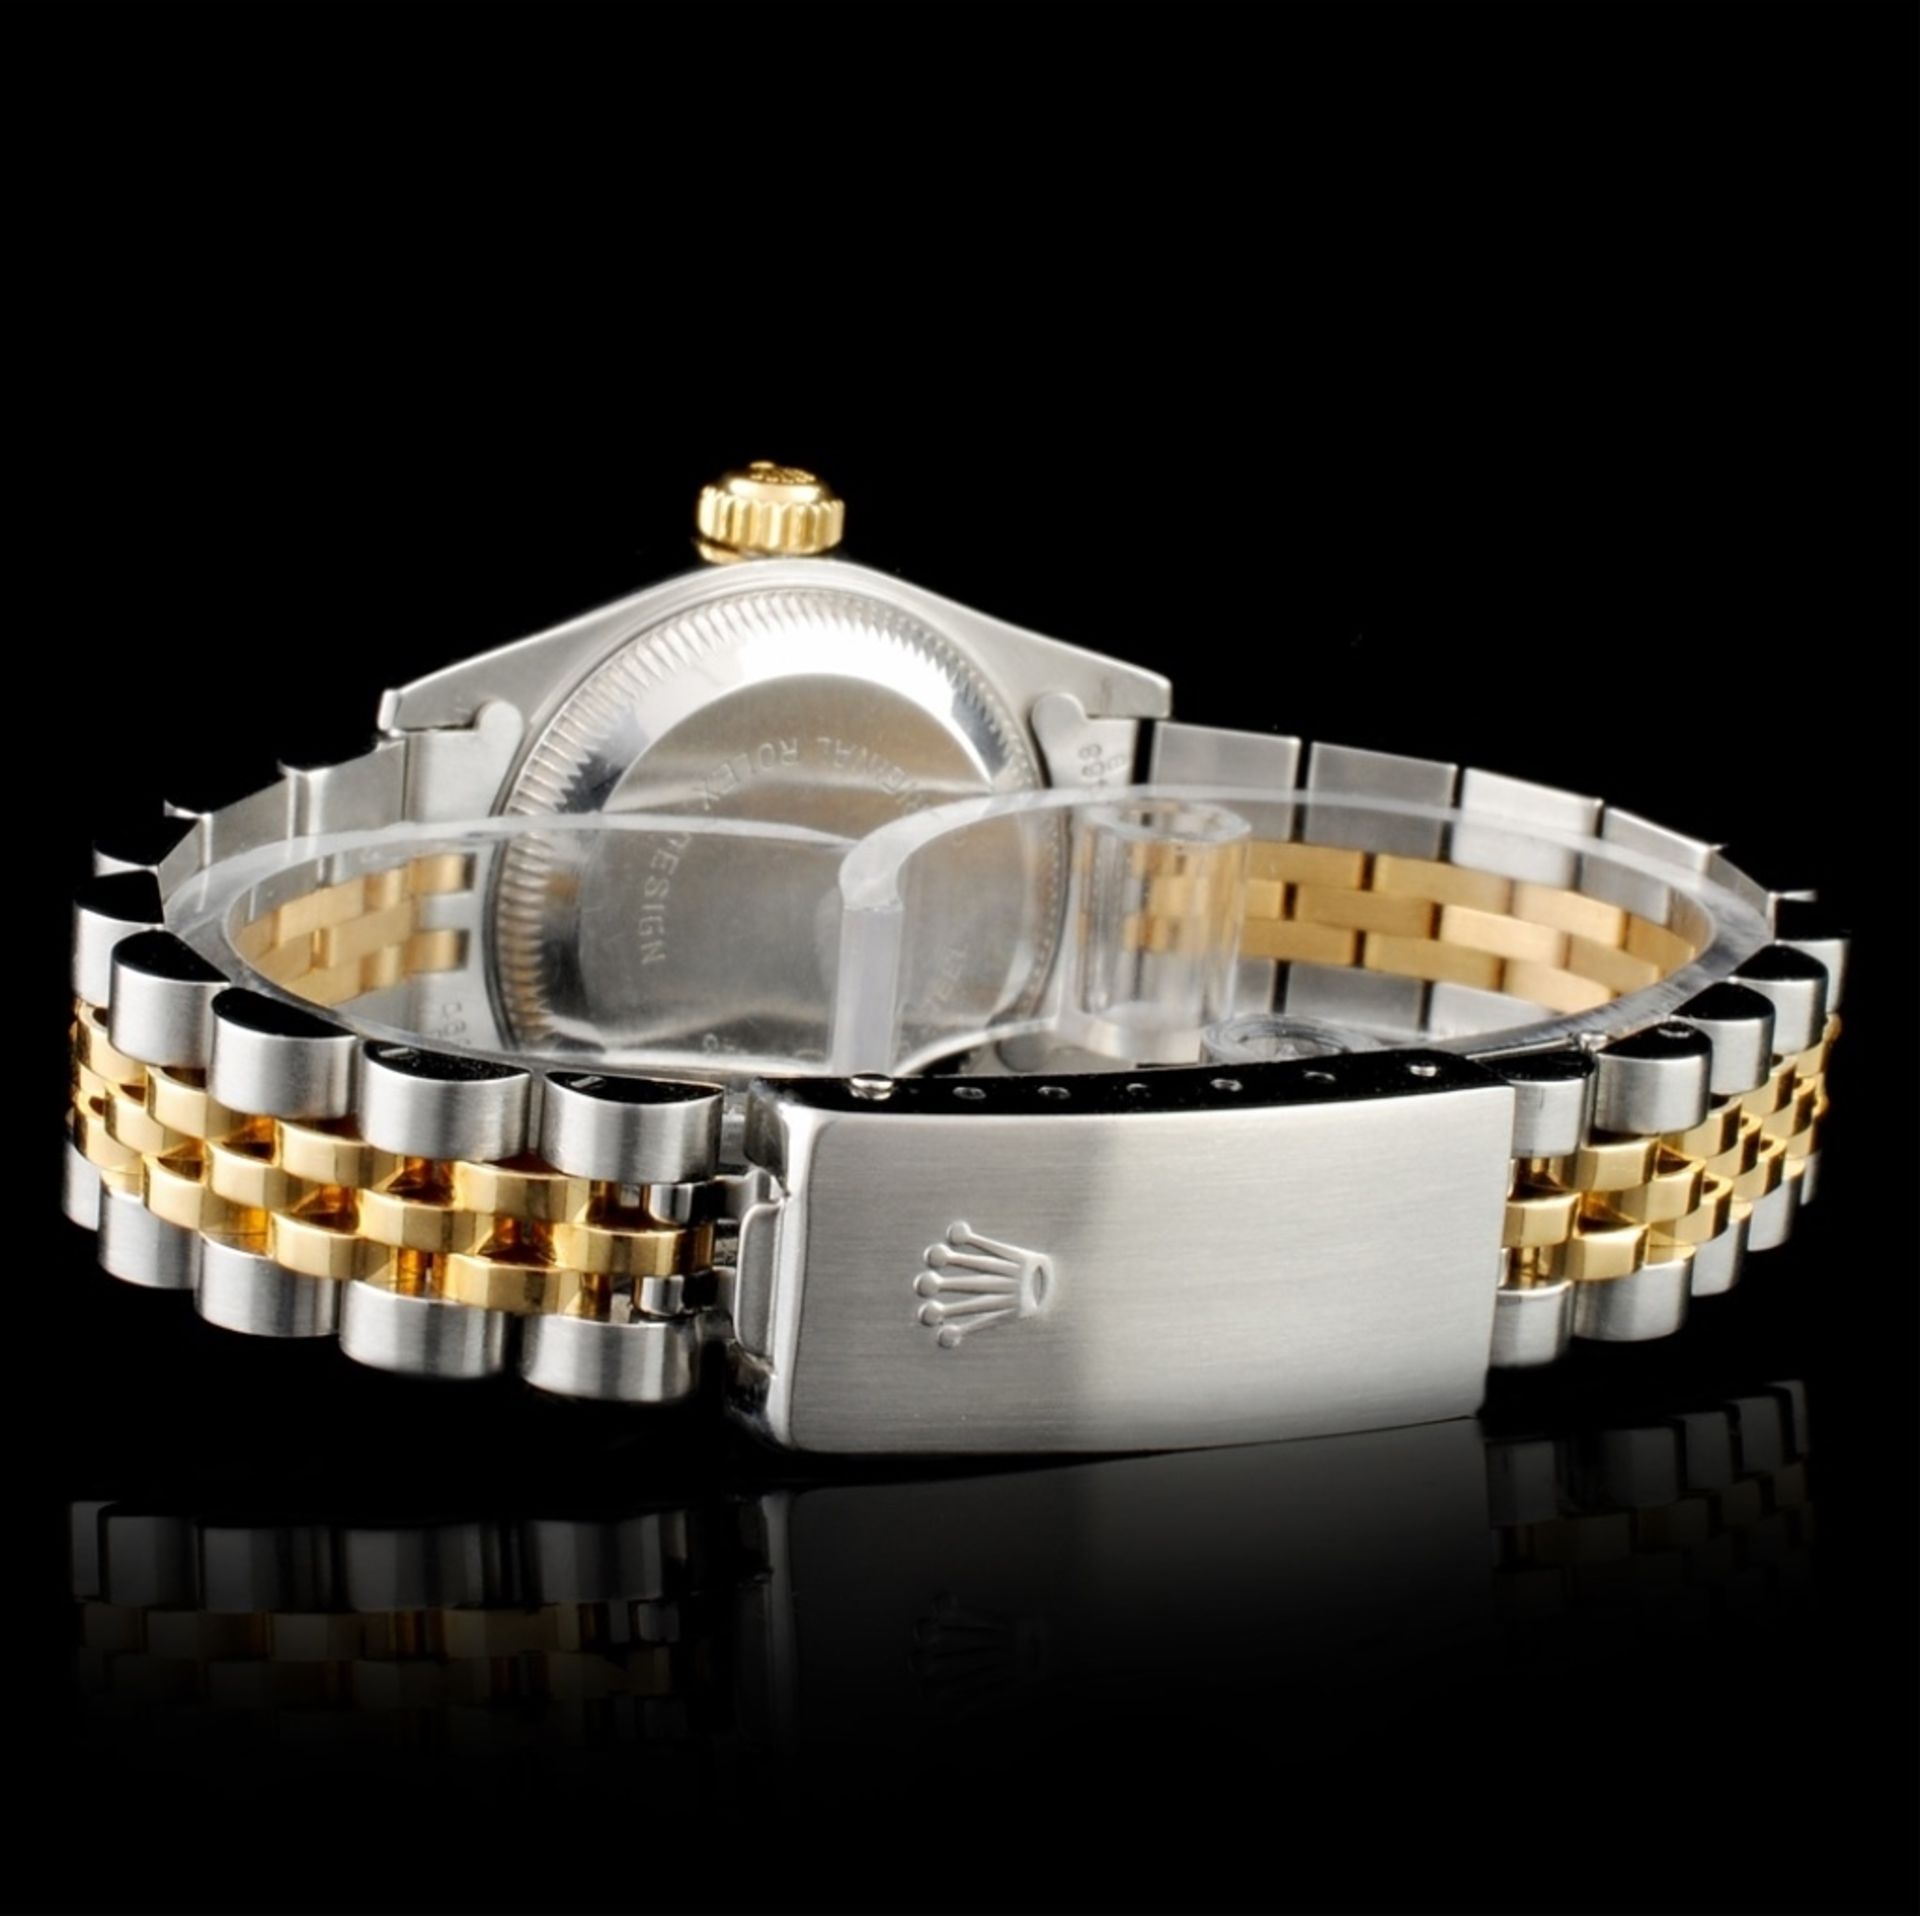 Rolex DateJust Diamond Ladies Wristwatch - Image 4 of 6